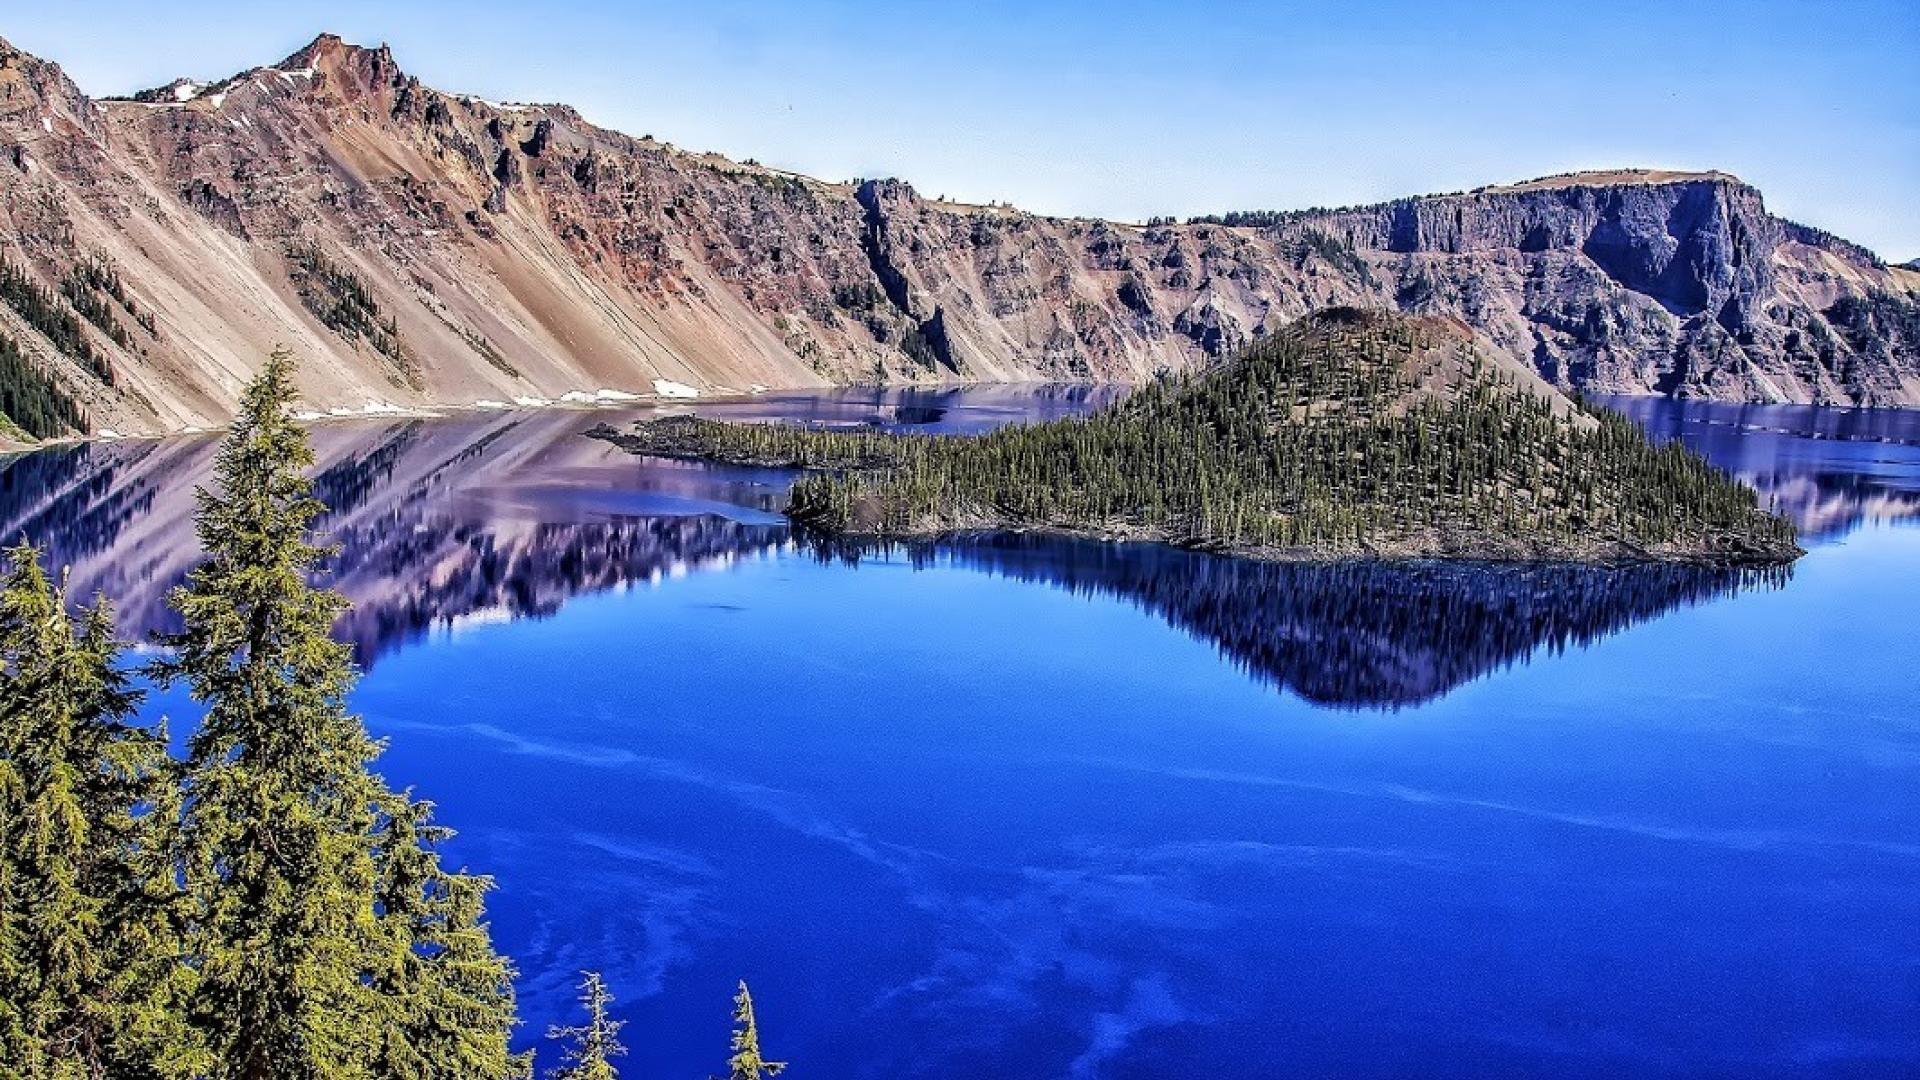 Crater Lake National Park Wallpaper - WallpaperSafari